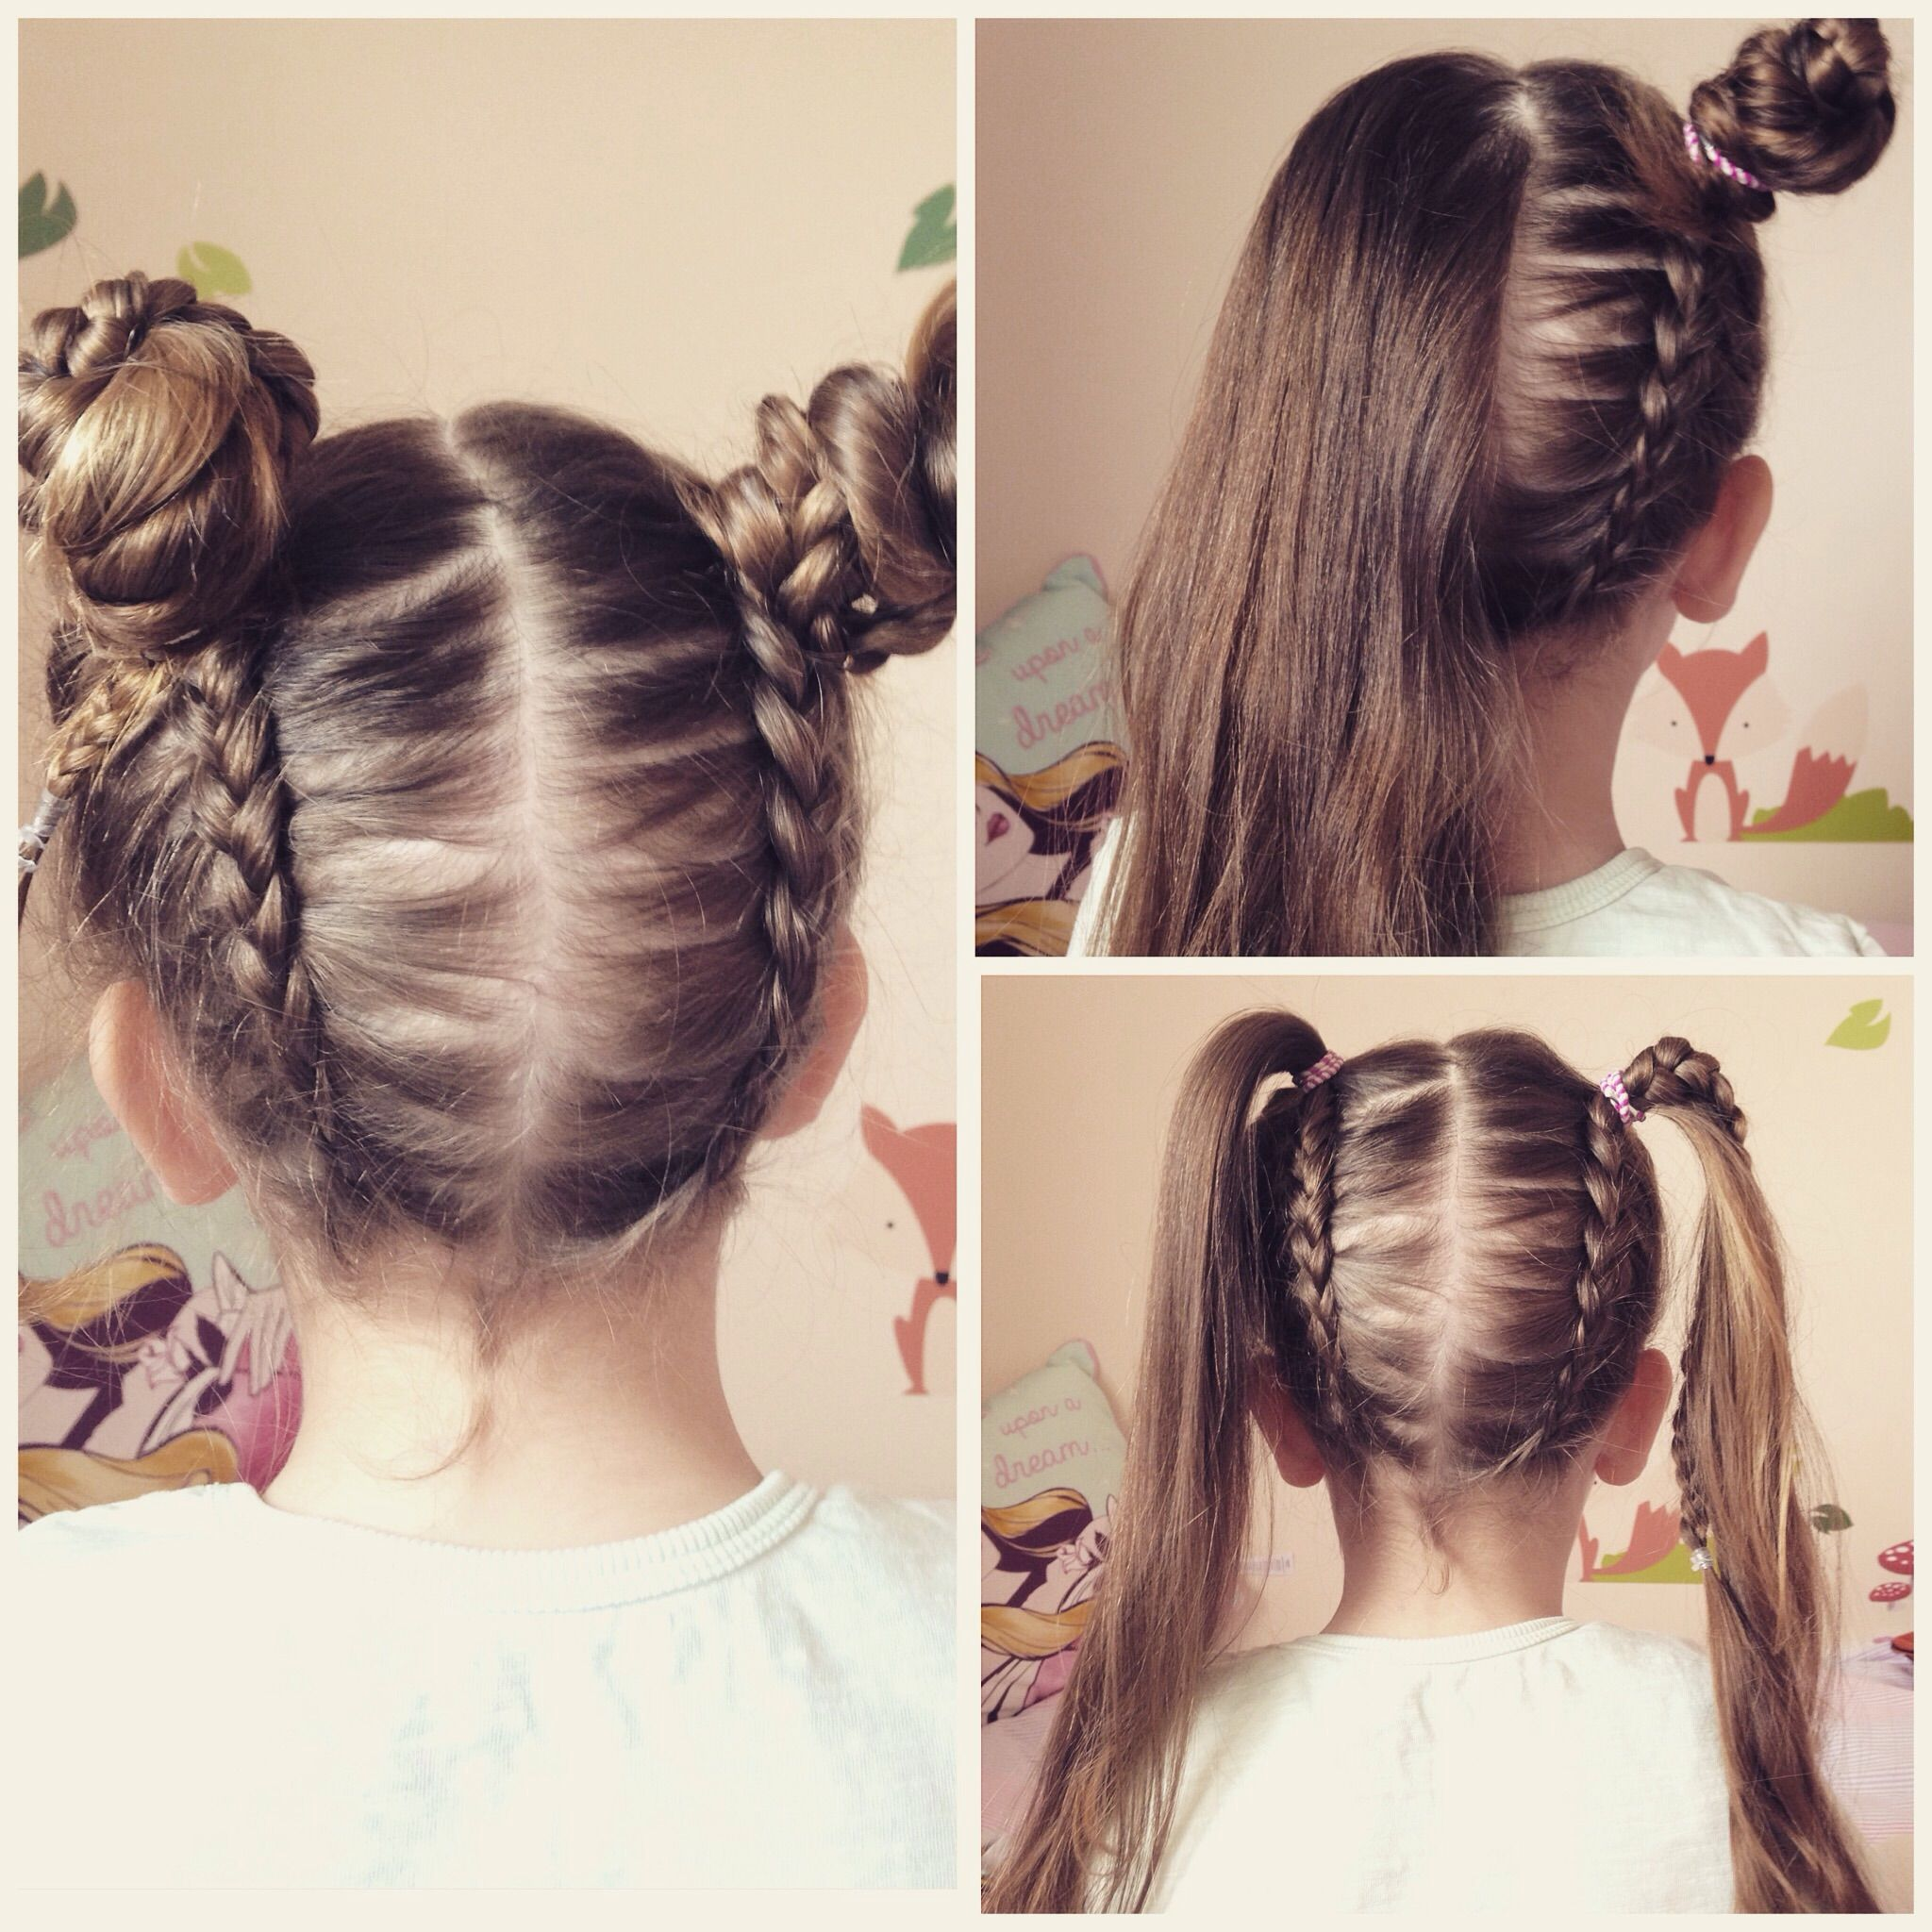 Upside down dutch braid into messy bun pigtails Little girl